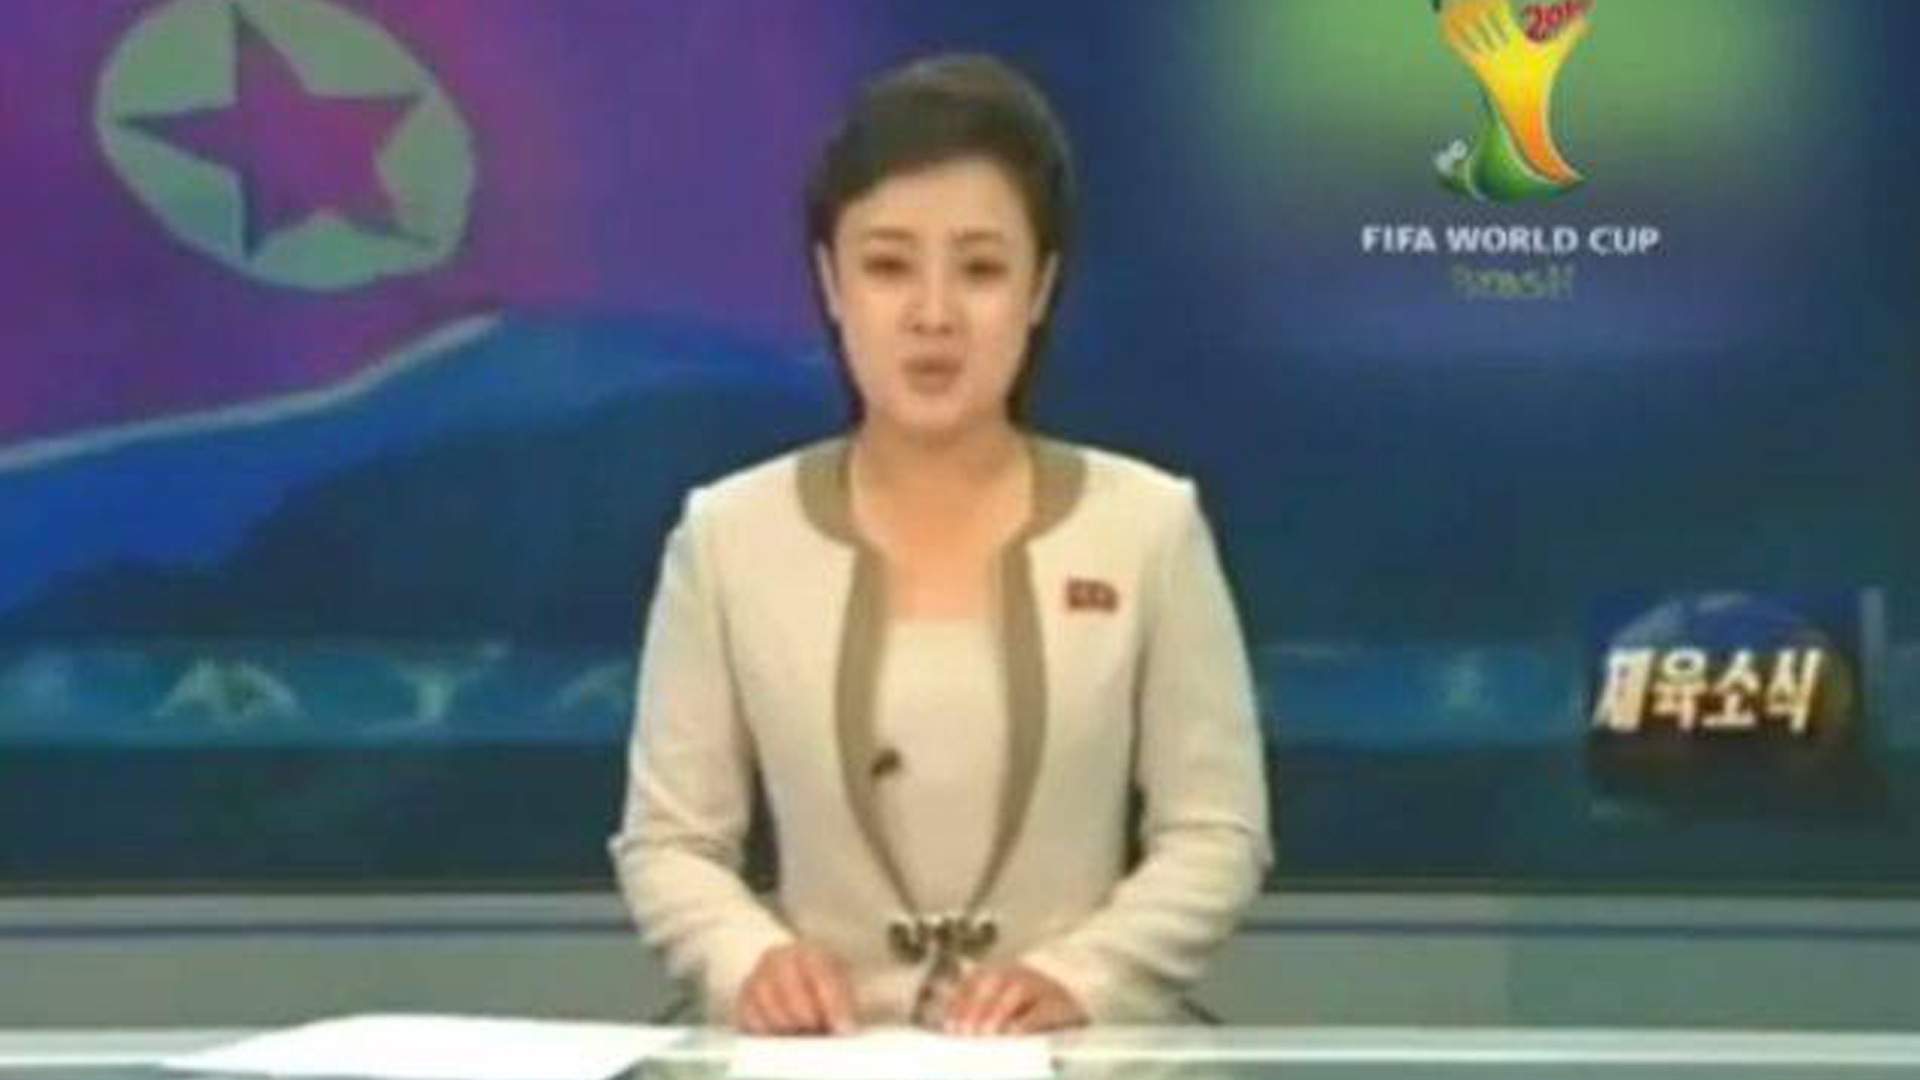 north-korea-world-cup-071314-youtube-ftr